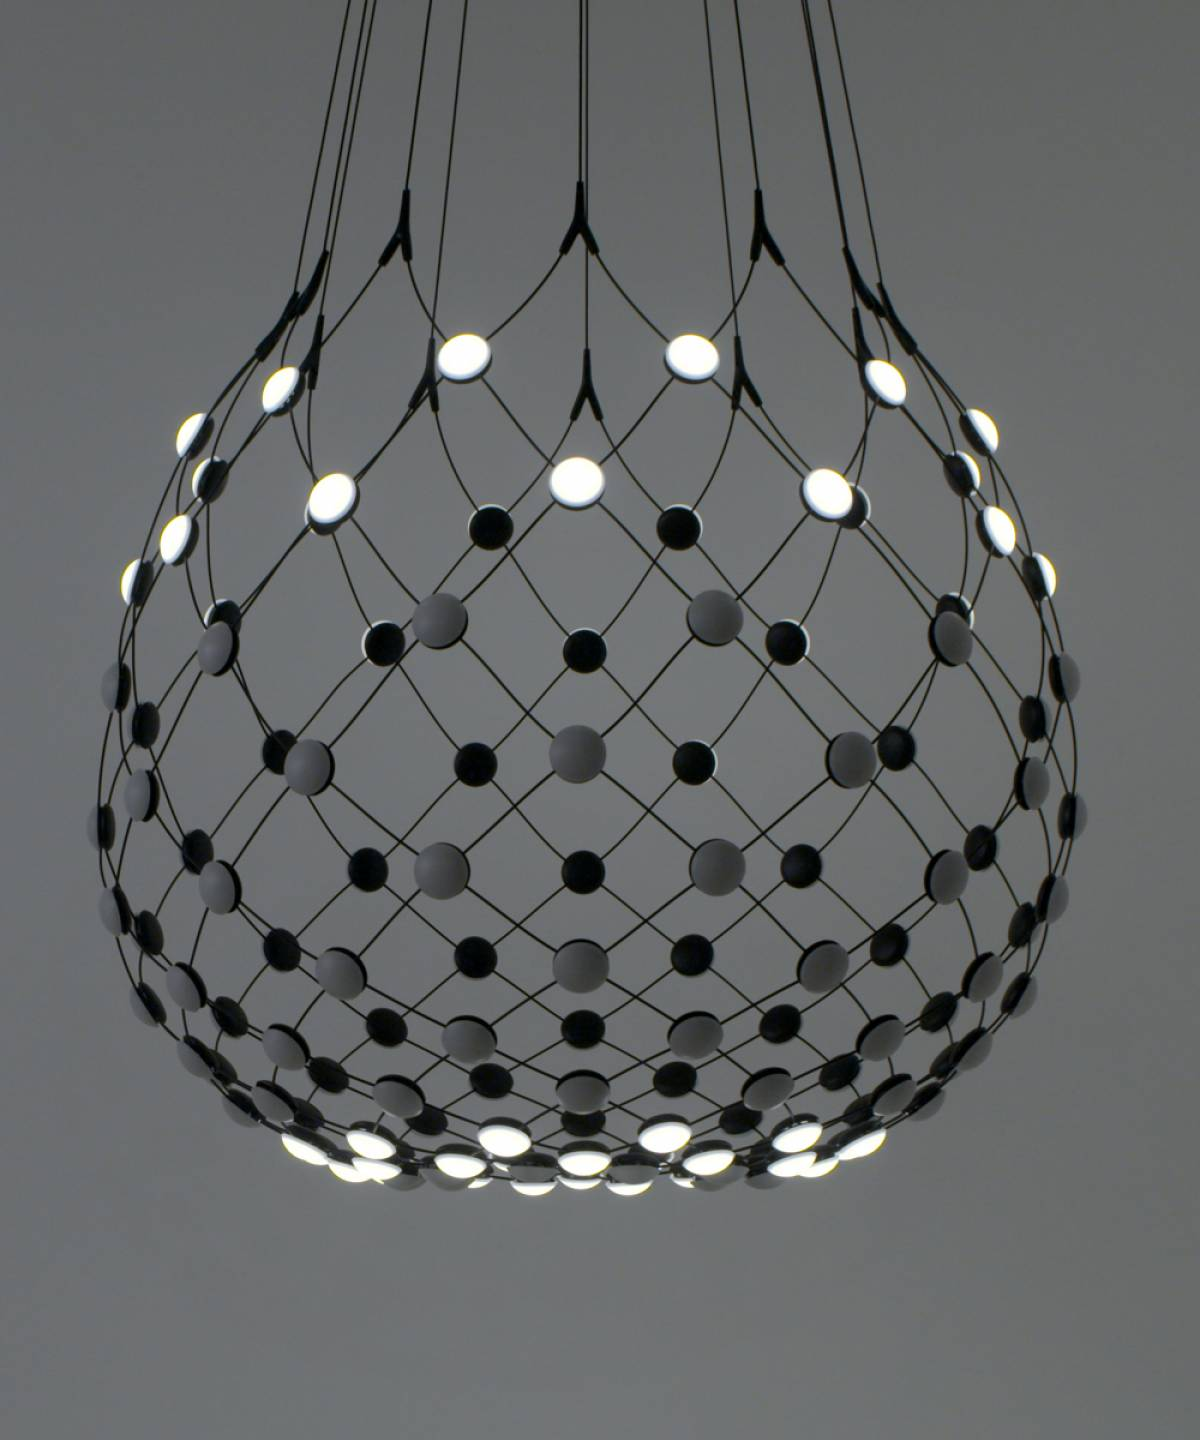 1 Mesh wireless lamp Luceplan